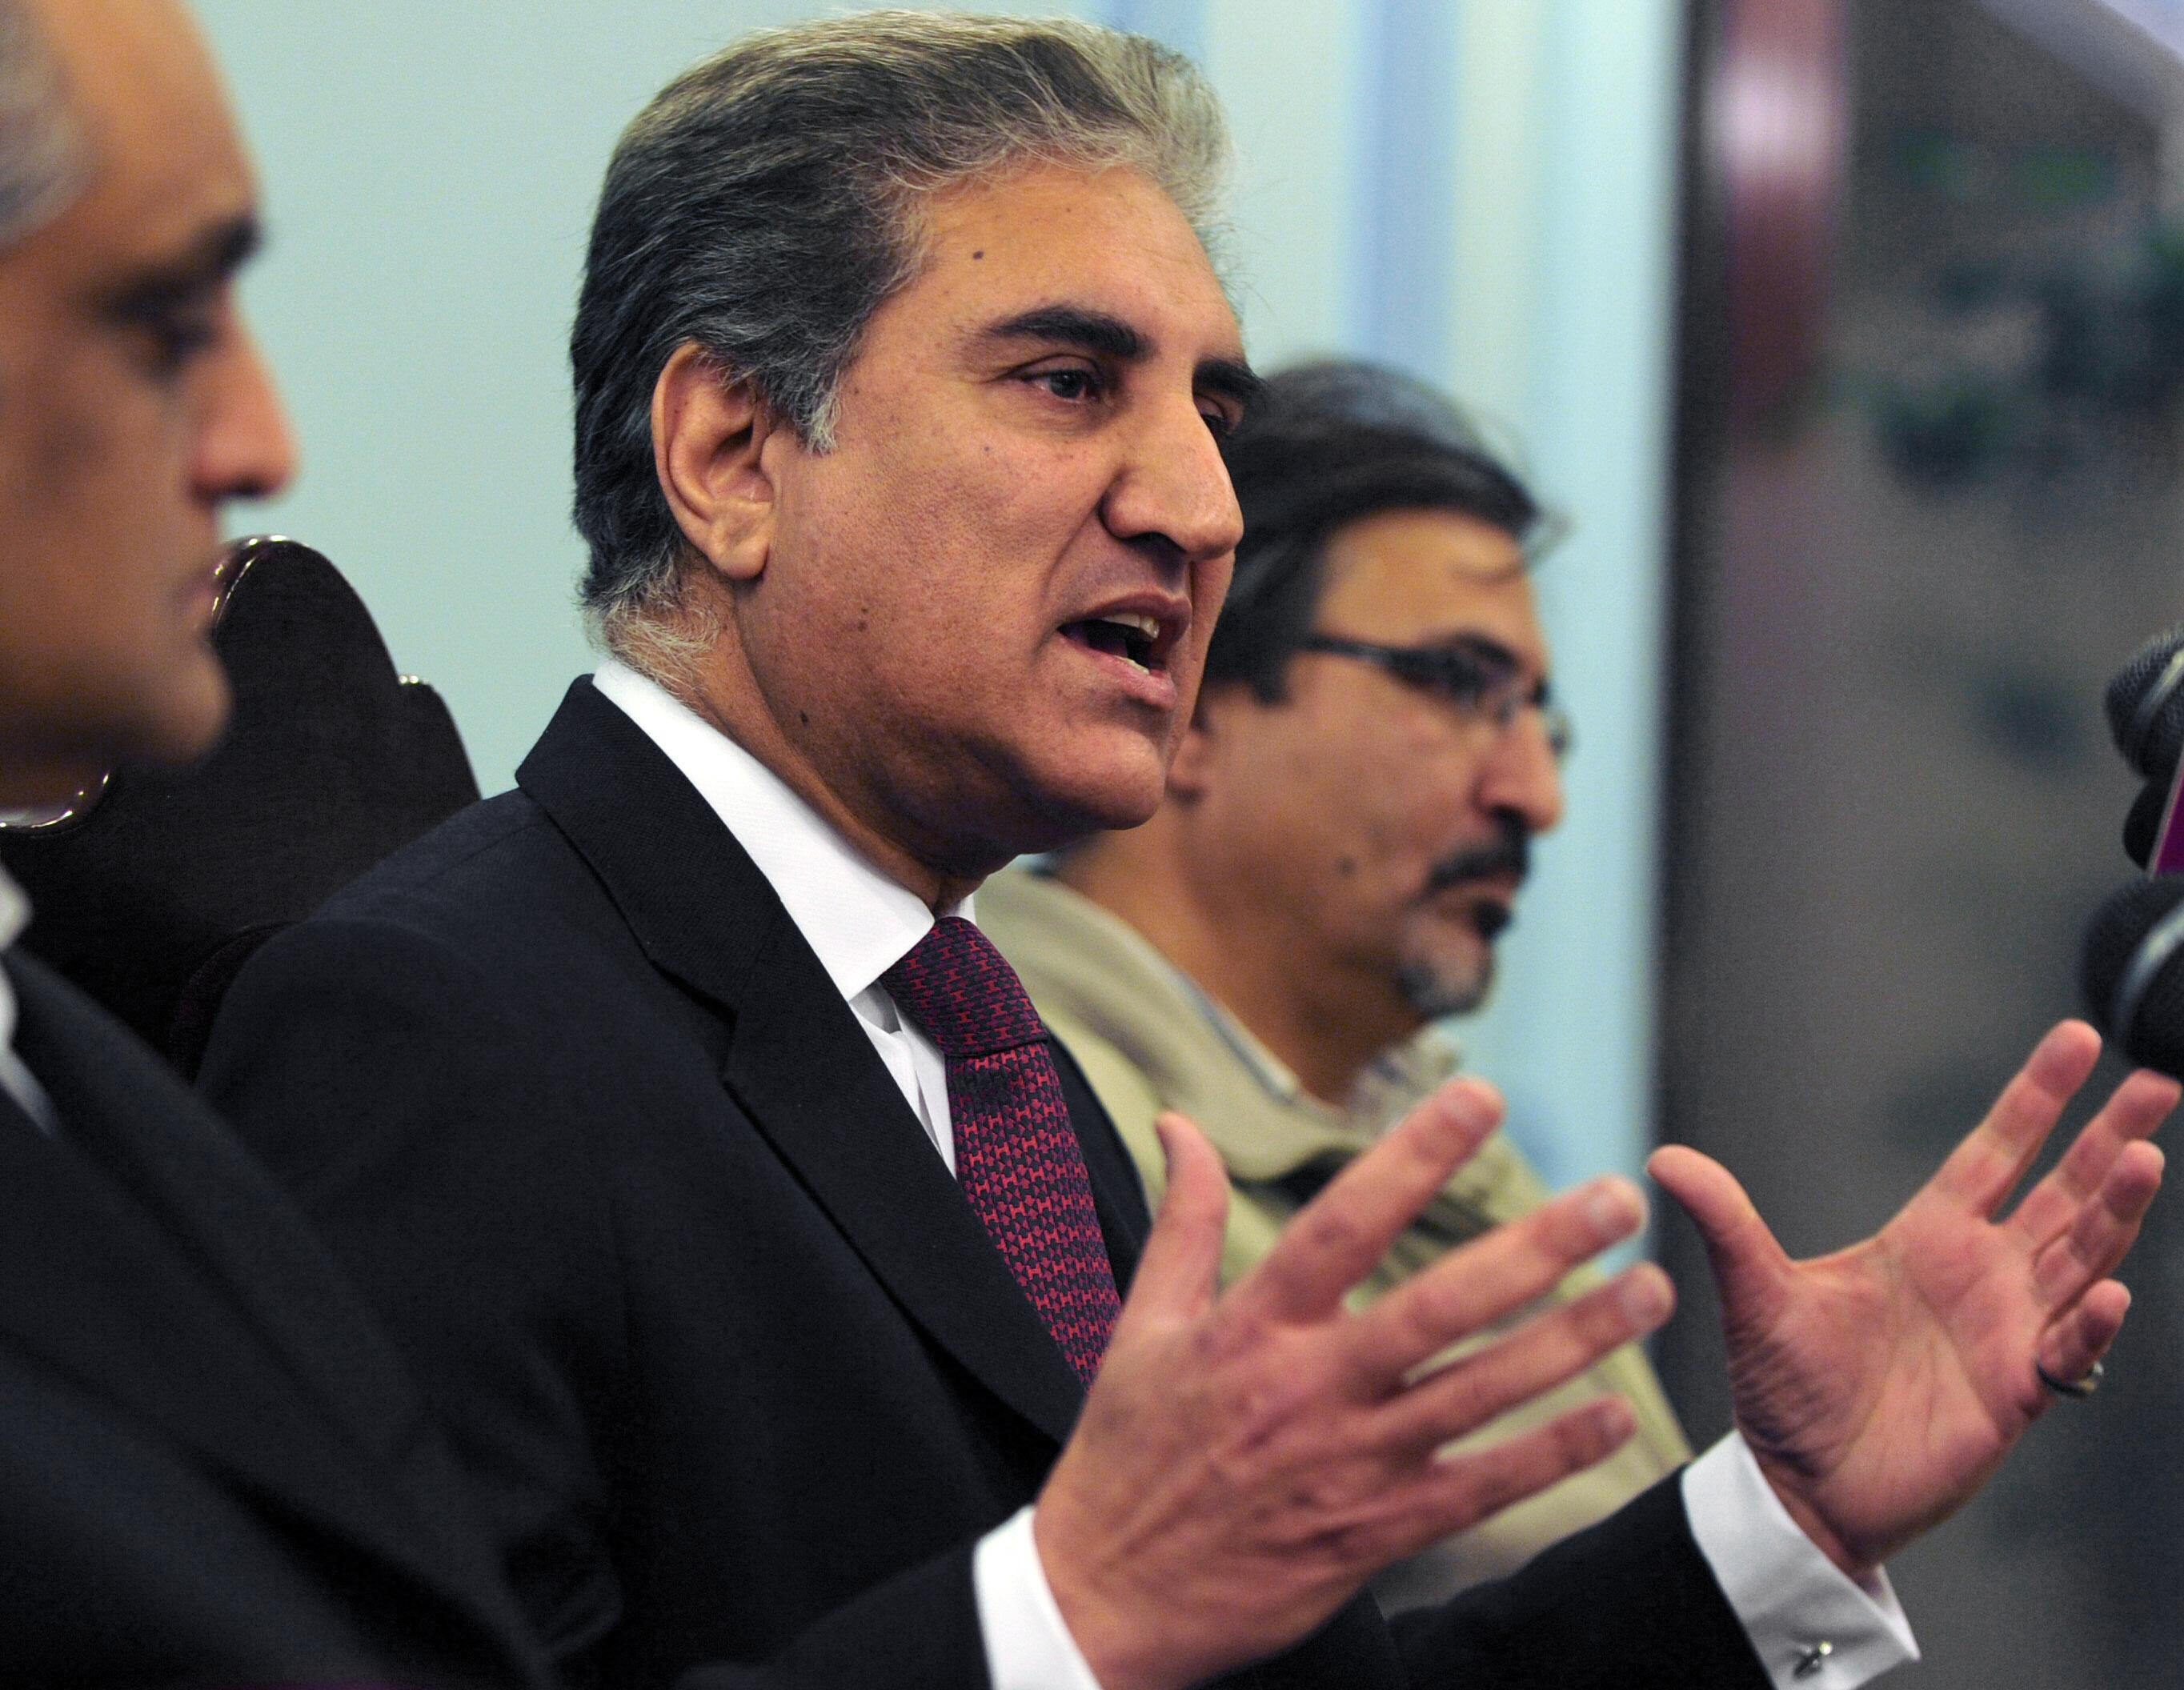 shah-mehmood-qureshi-afp-2-2-2-2-2-2-2-2-2-2-2-2-3-2-2-2-2-2-2-2-3-2-2-2-2-2